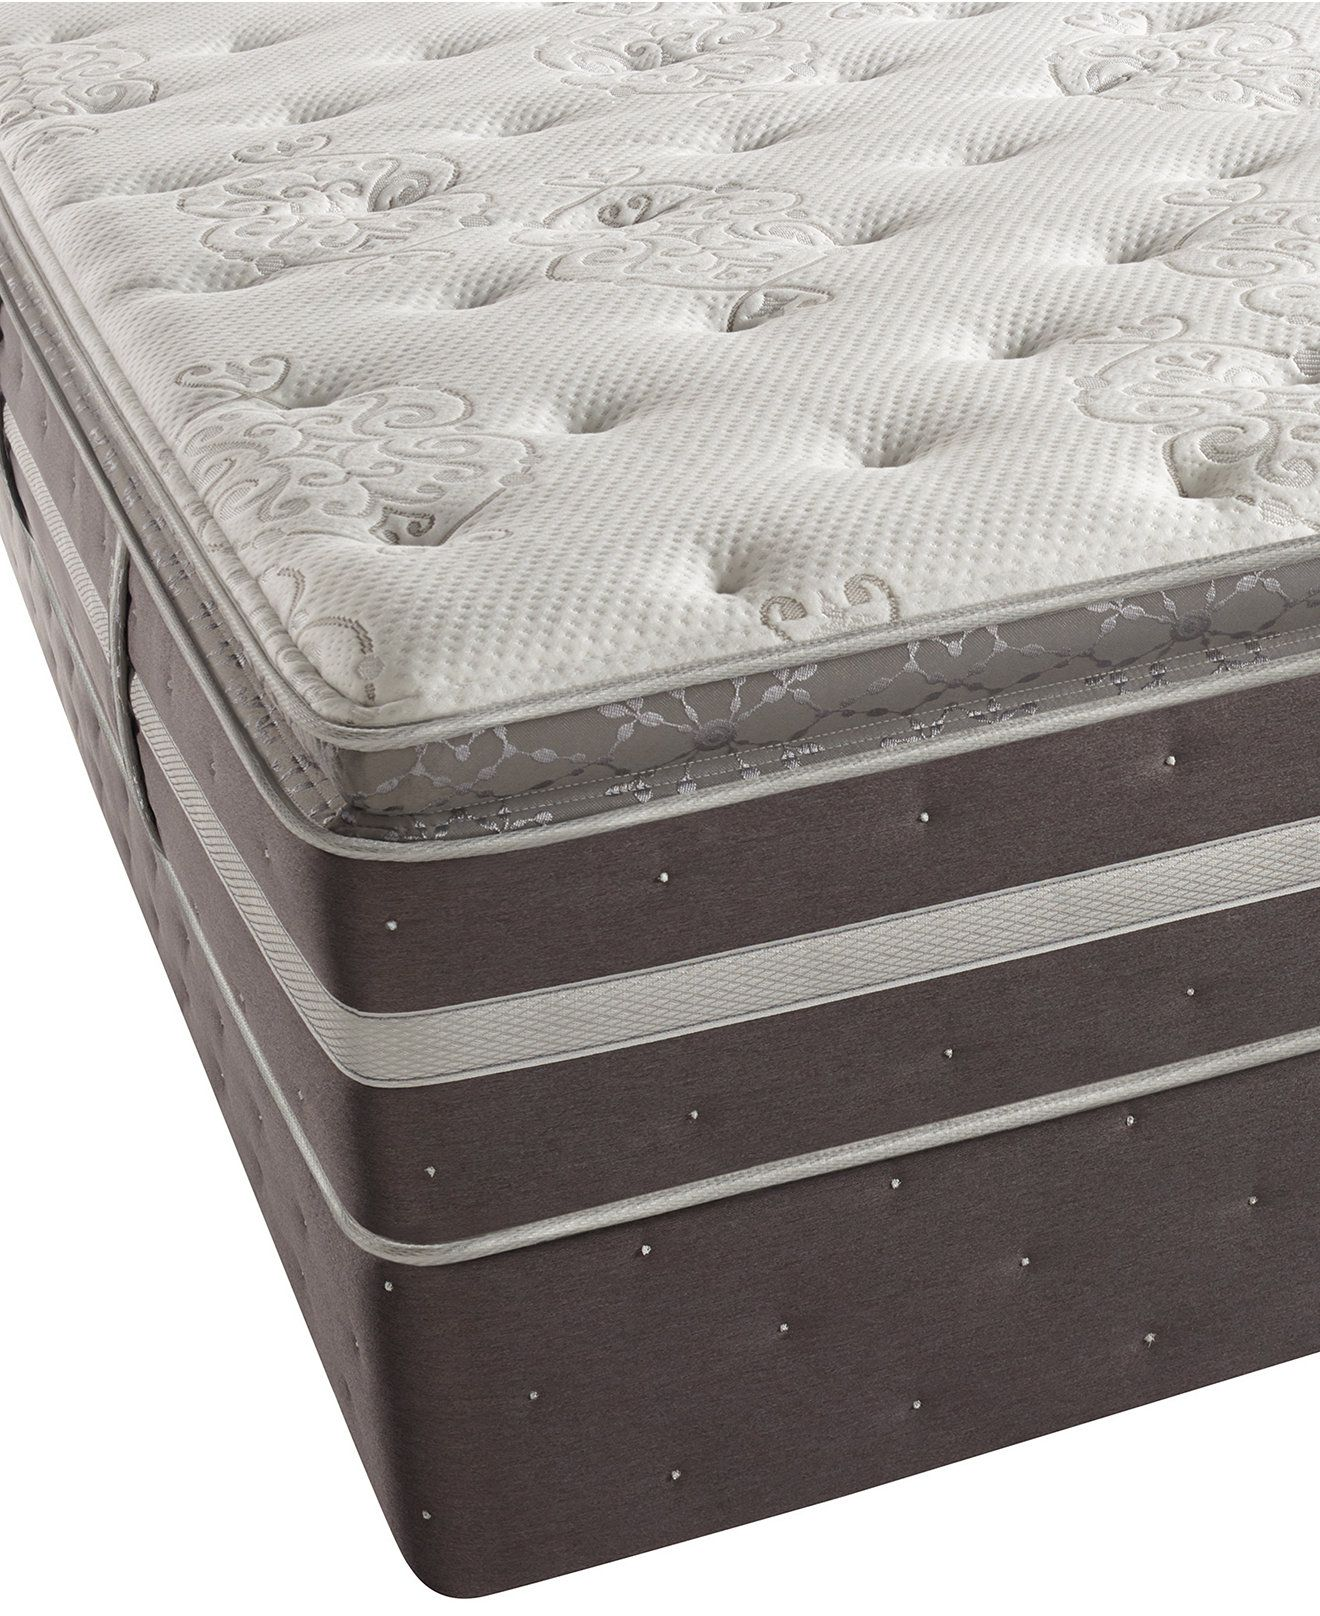 Hotel Collection By Aireloom 12 Vitagenic Copper Gel Firm Mattress